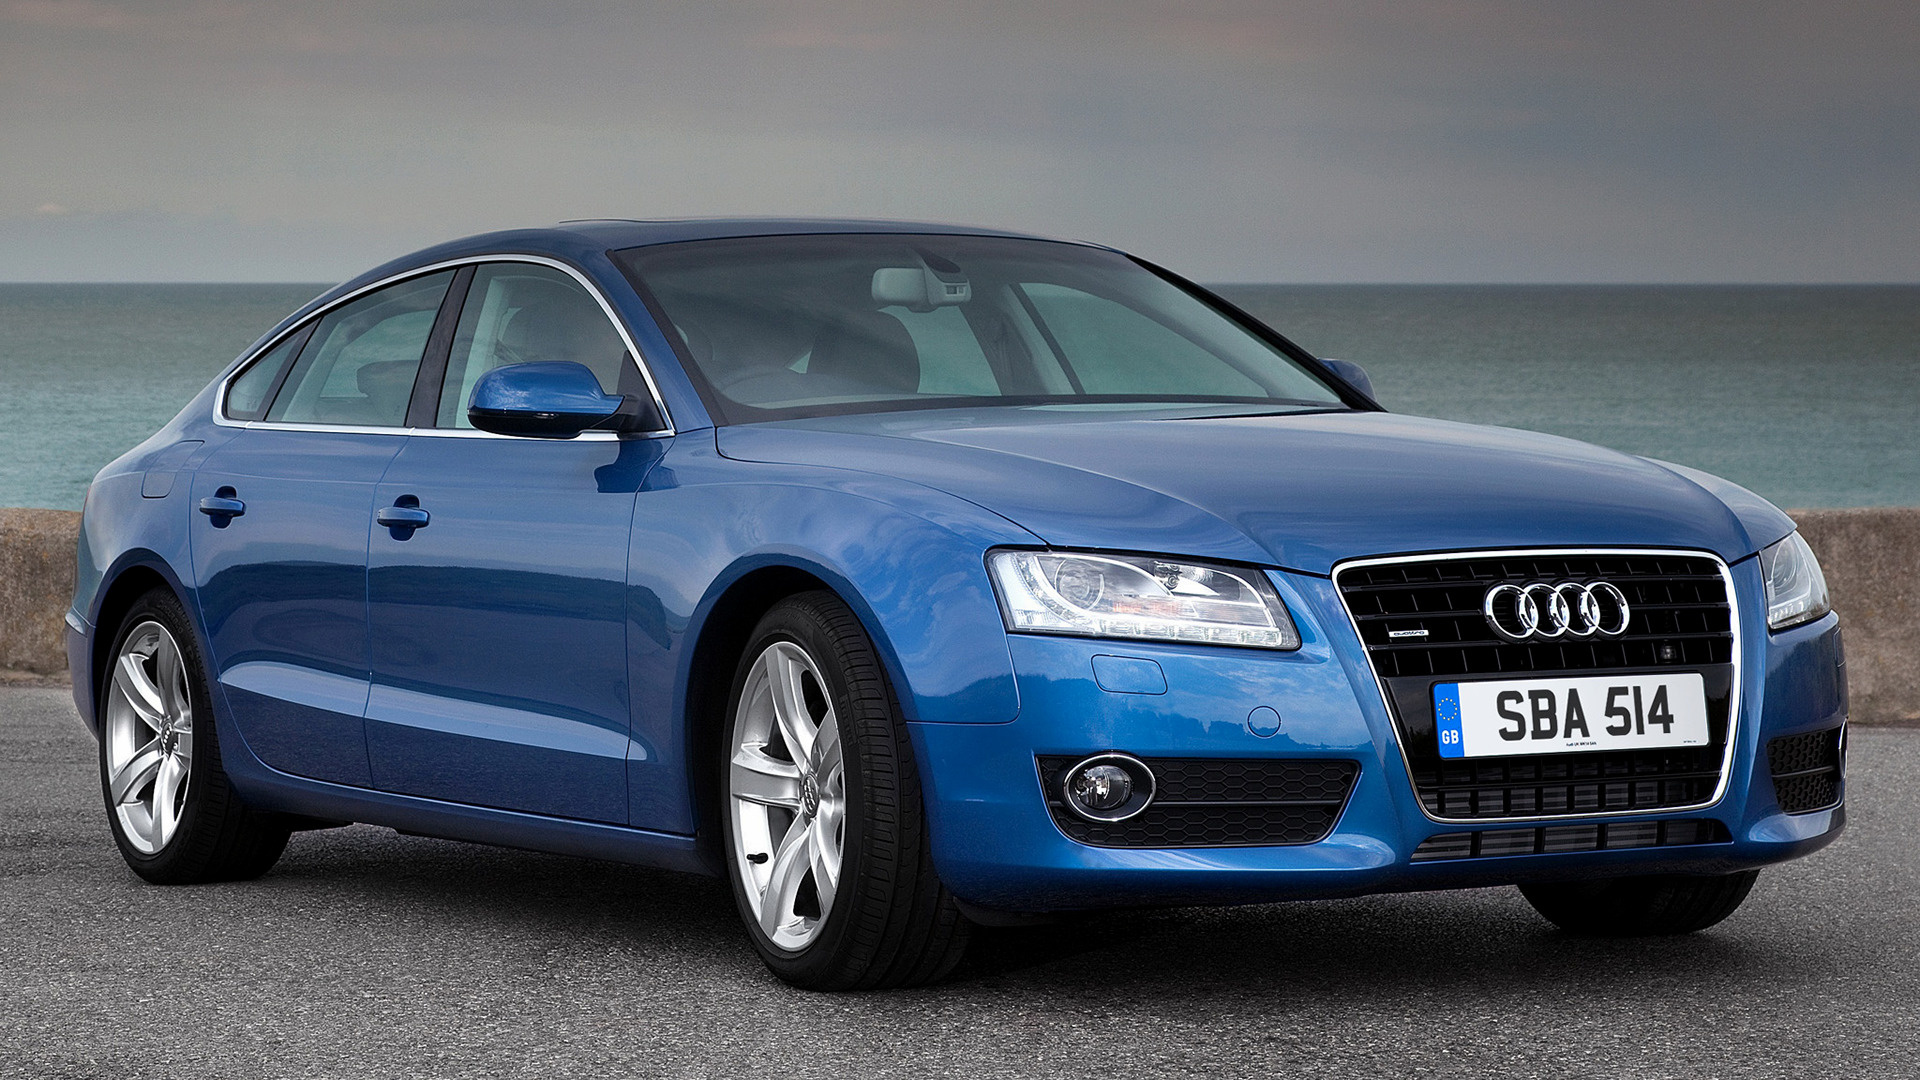 2009 Audi A5 Sportback Uk Wallpapers And Hd Images